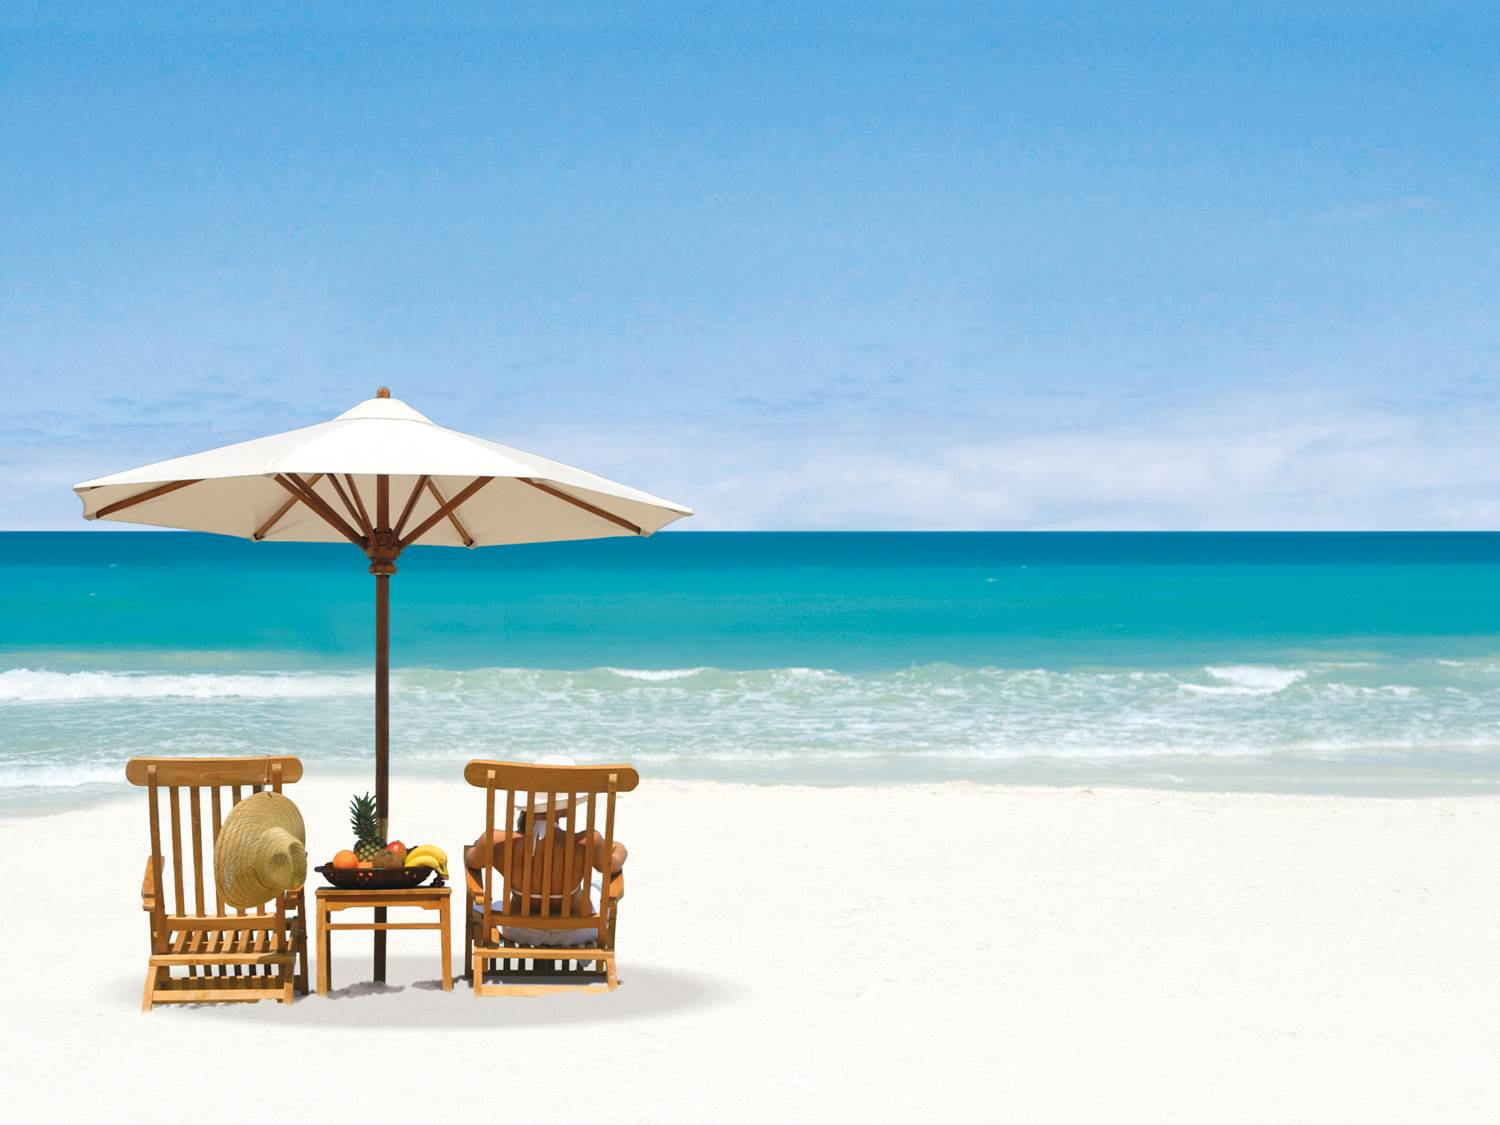 Relaxing on Anguilla beaches